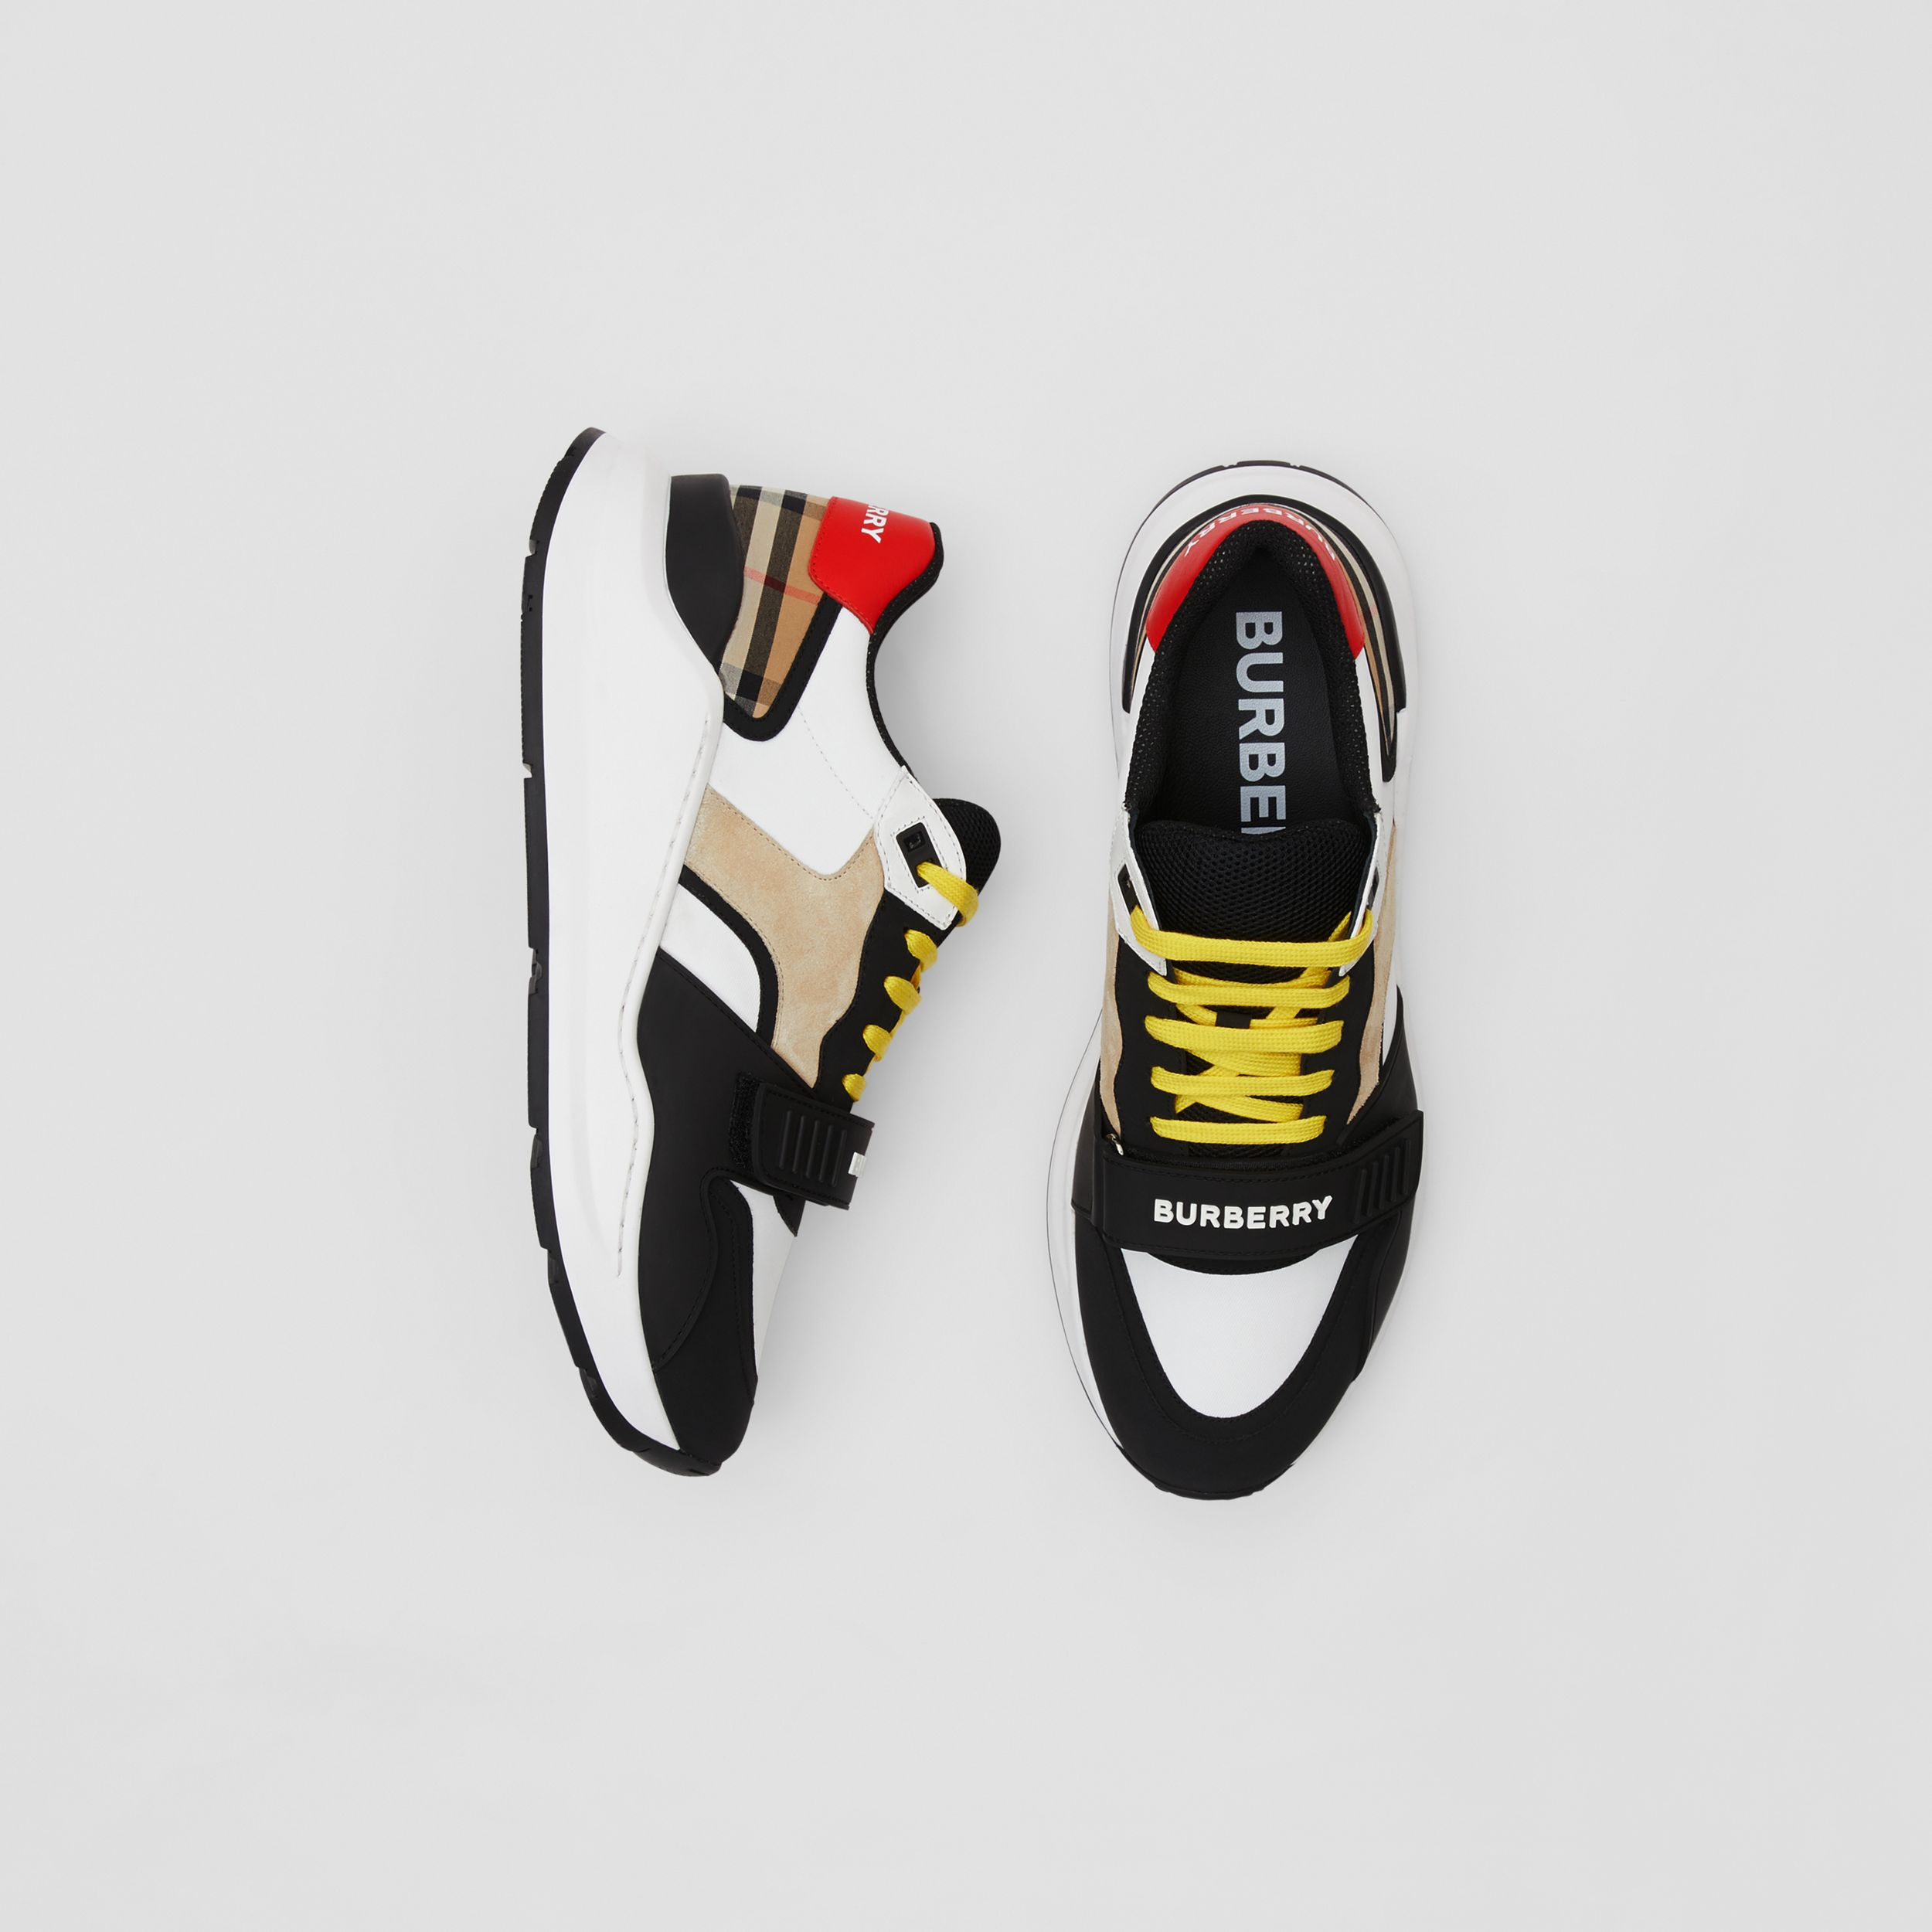 Nylon, Suede and Vintage Check Sneakers in Archive Beige - Men | Burberry United Kingdom - 1